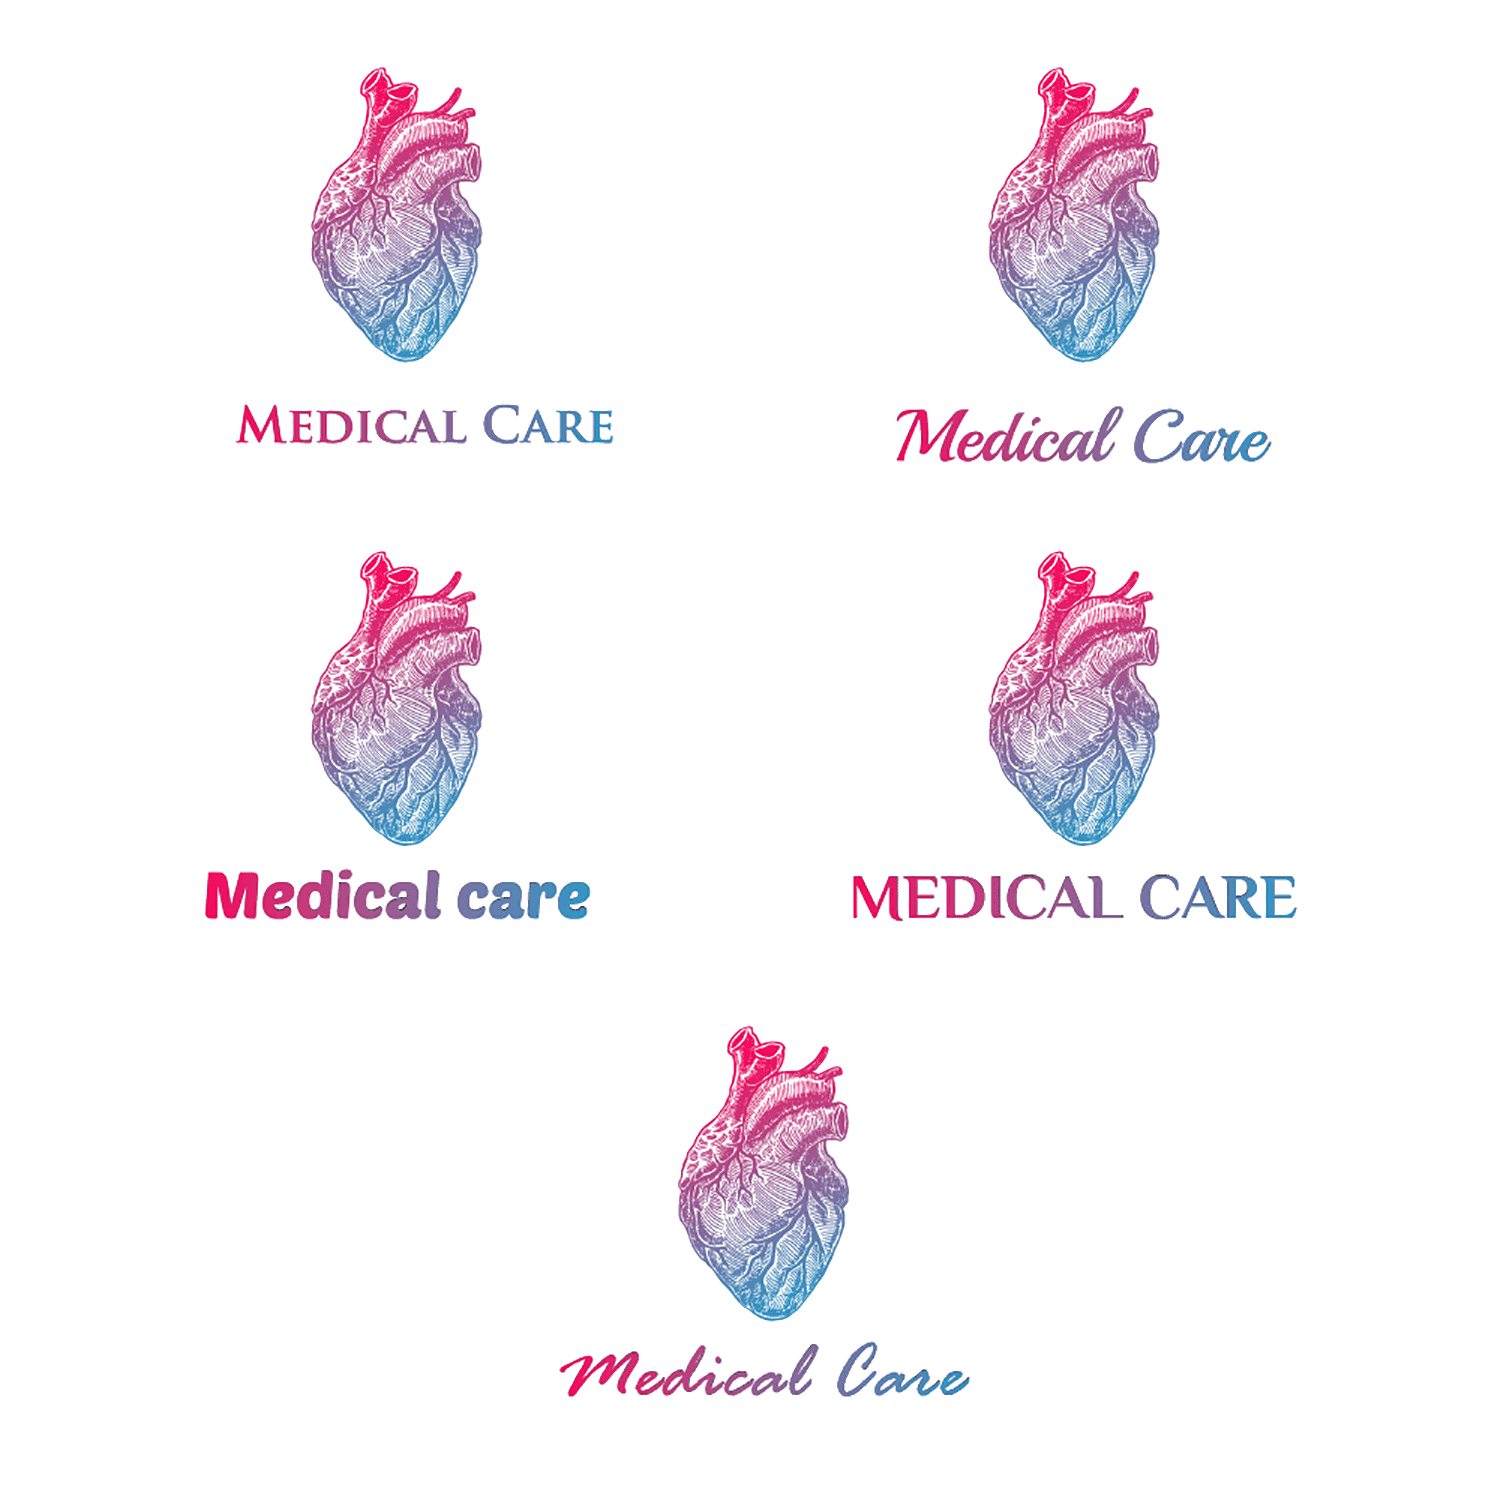 font types for hospital and healthcare logo design